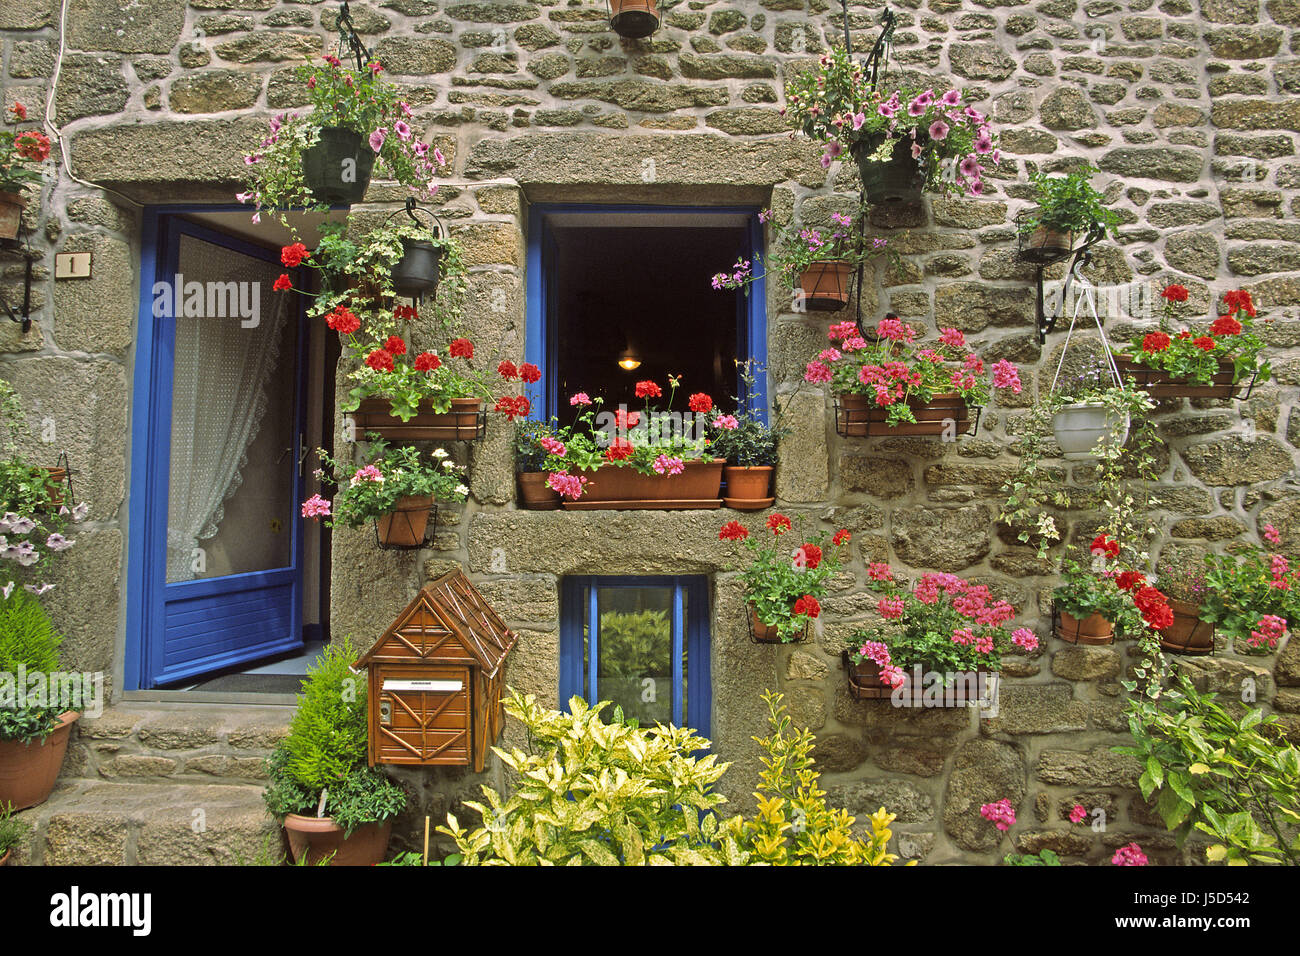 Flower Flowers Plant Door France Mailbox Doors Brittany Stone House Stock Photo Alamy